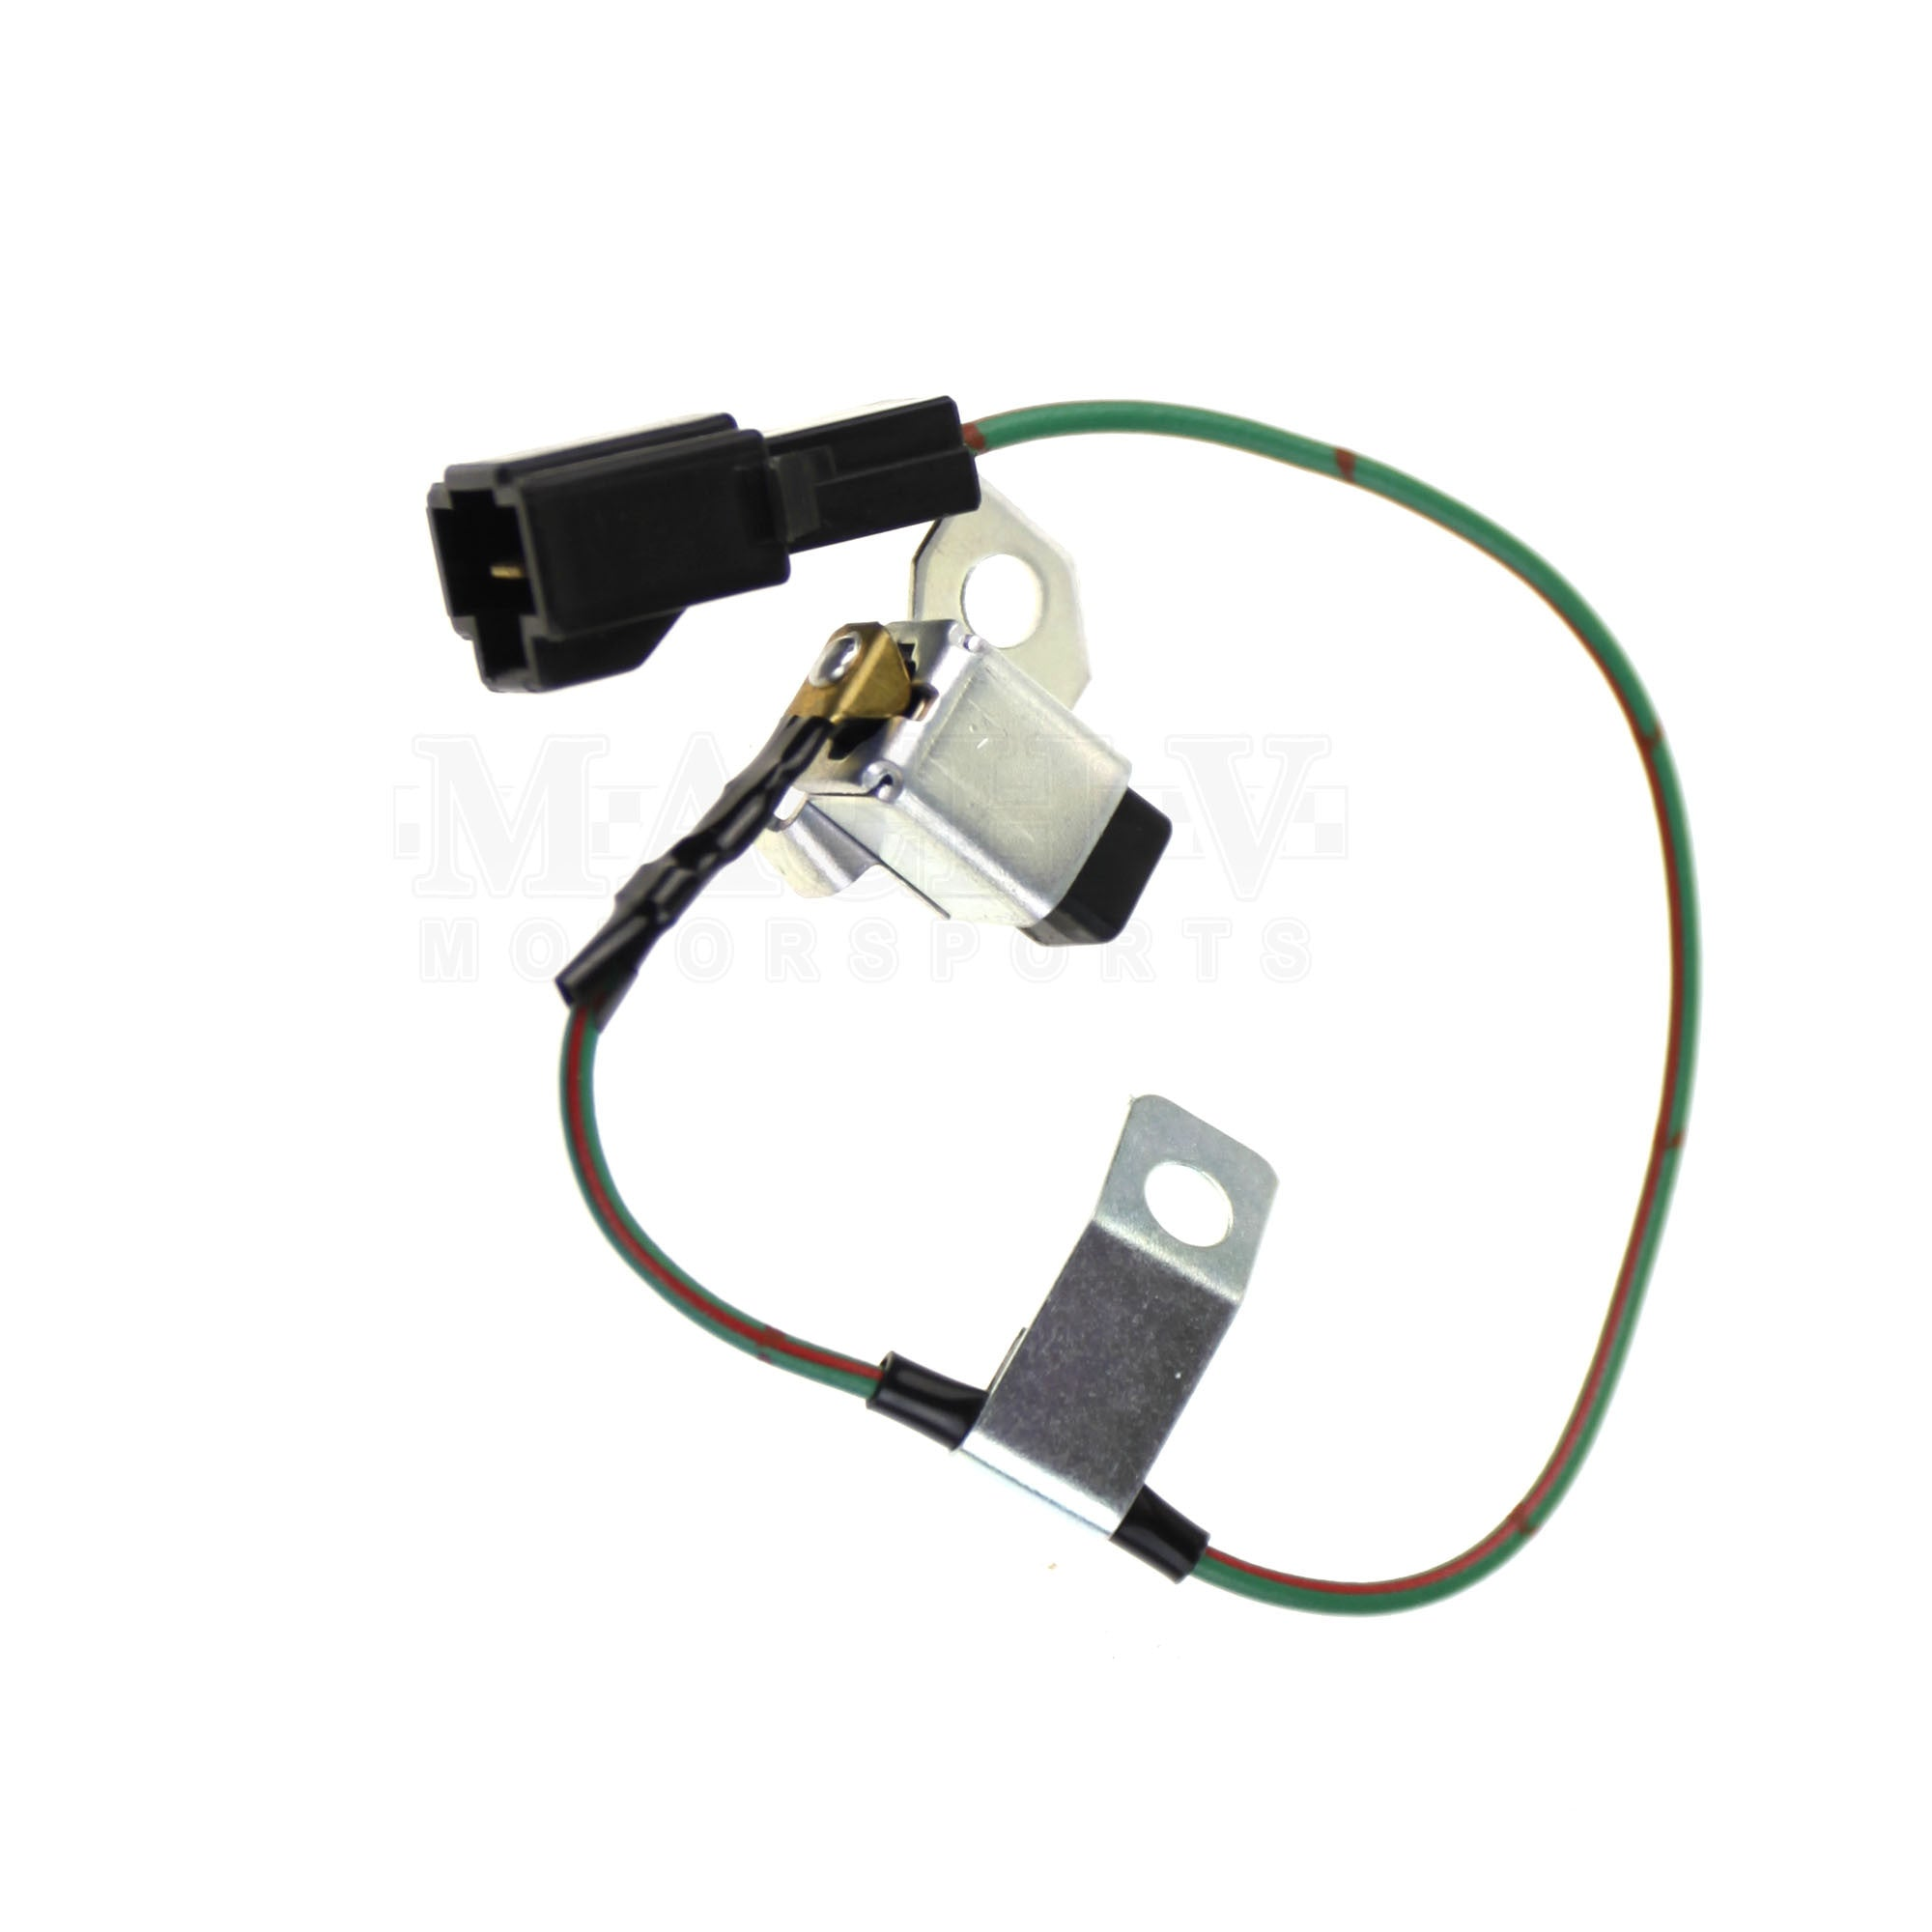 Https Daily Products 01130 Pcv Valve Electrical Boost Gauge Install Dsmtuners 1g Dsm Parking Brake Switchv1479850467